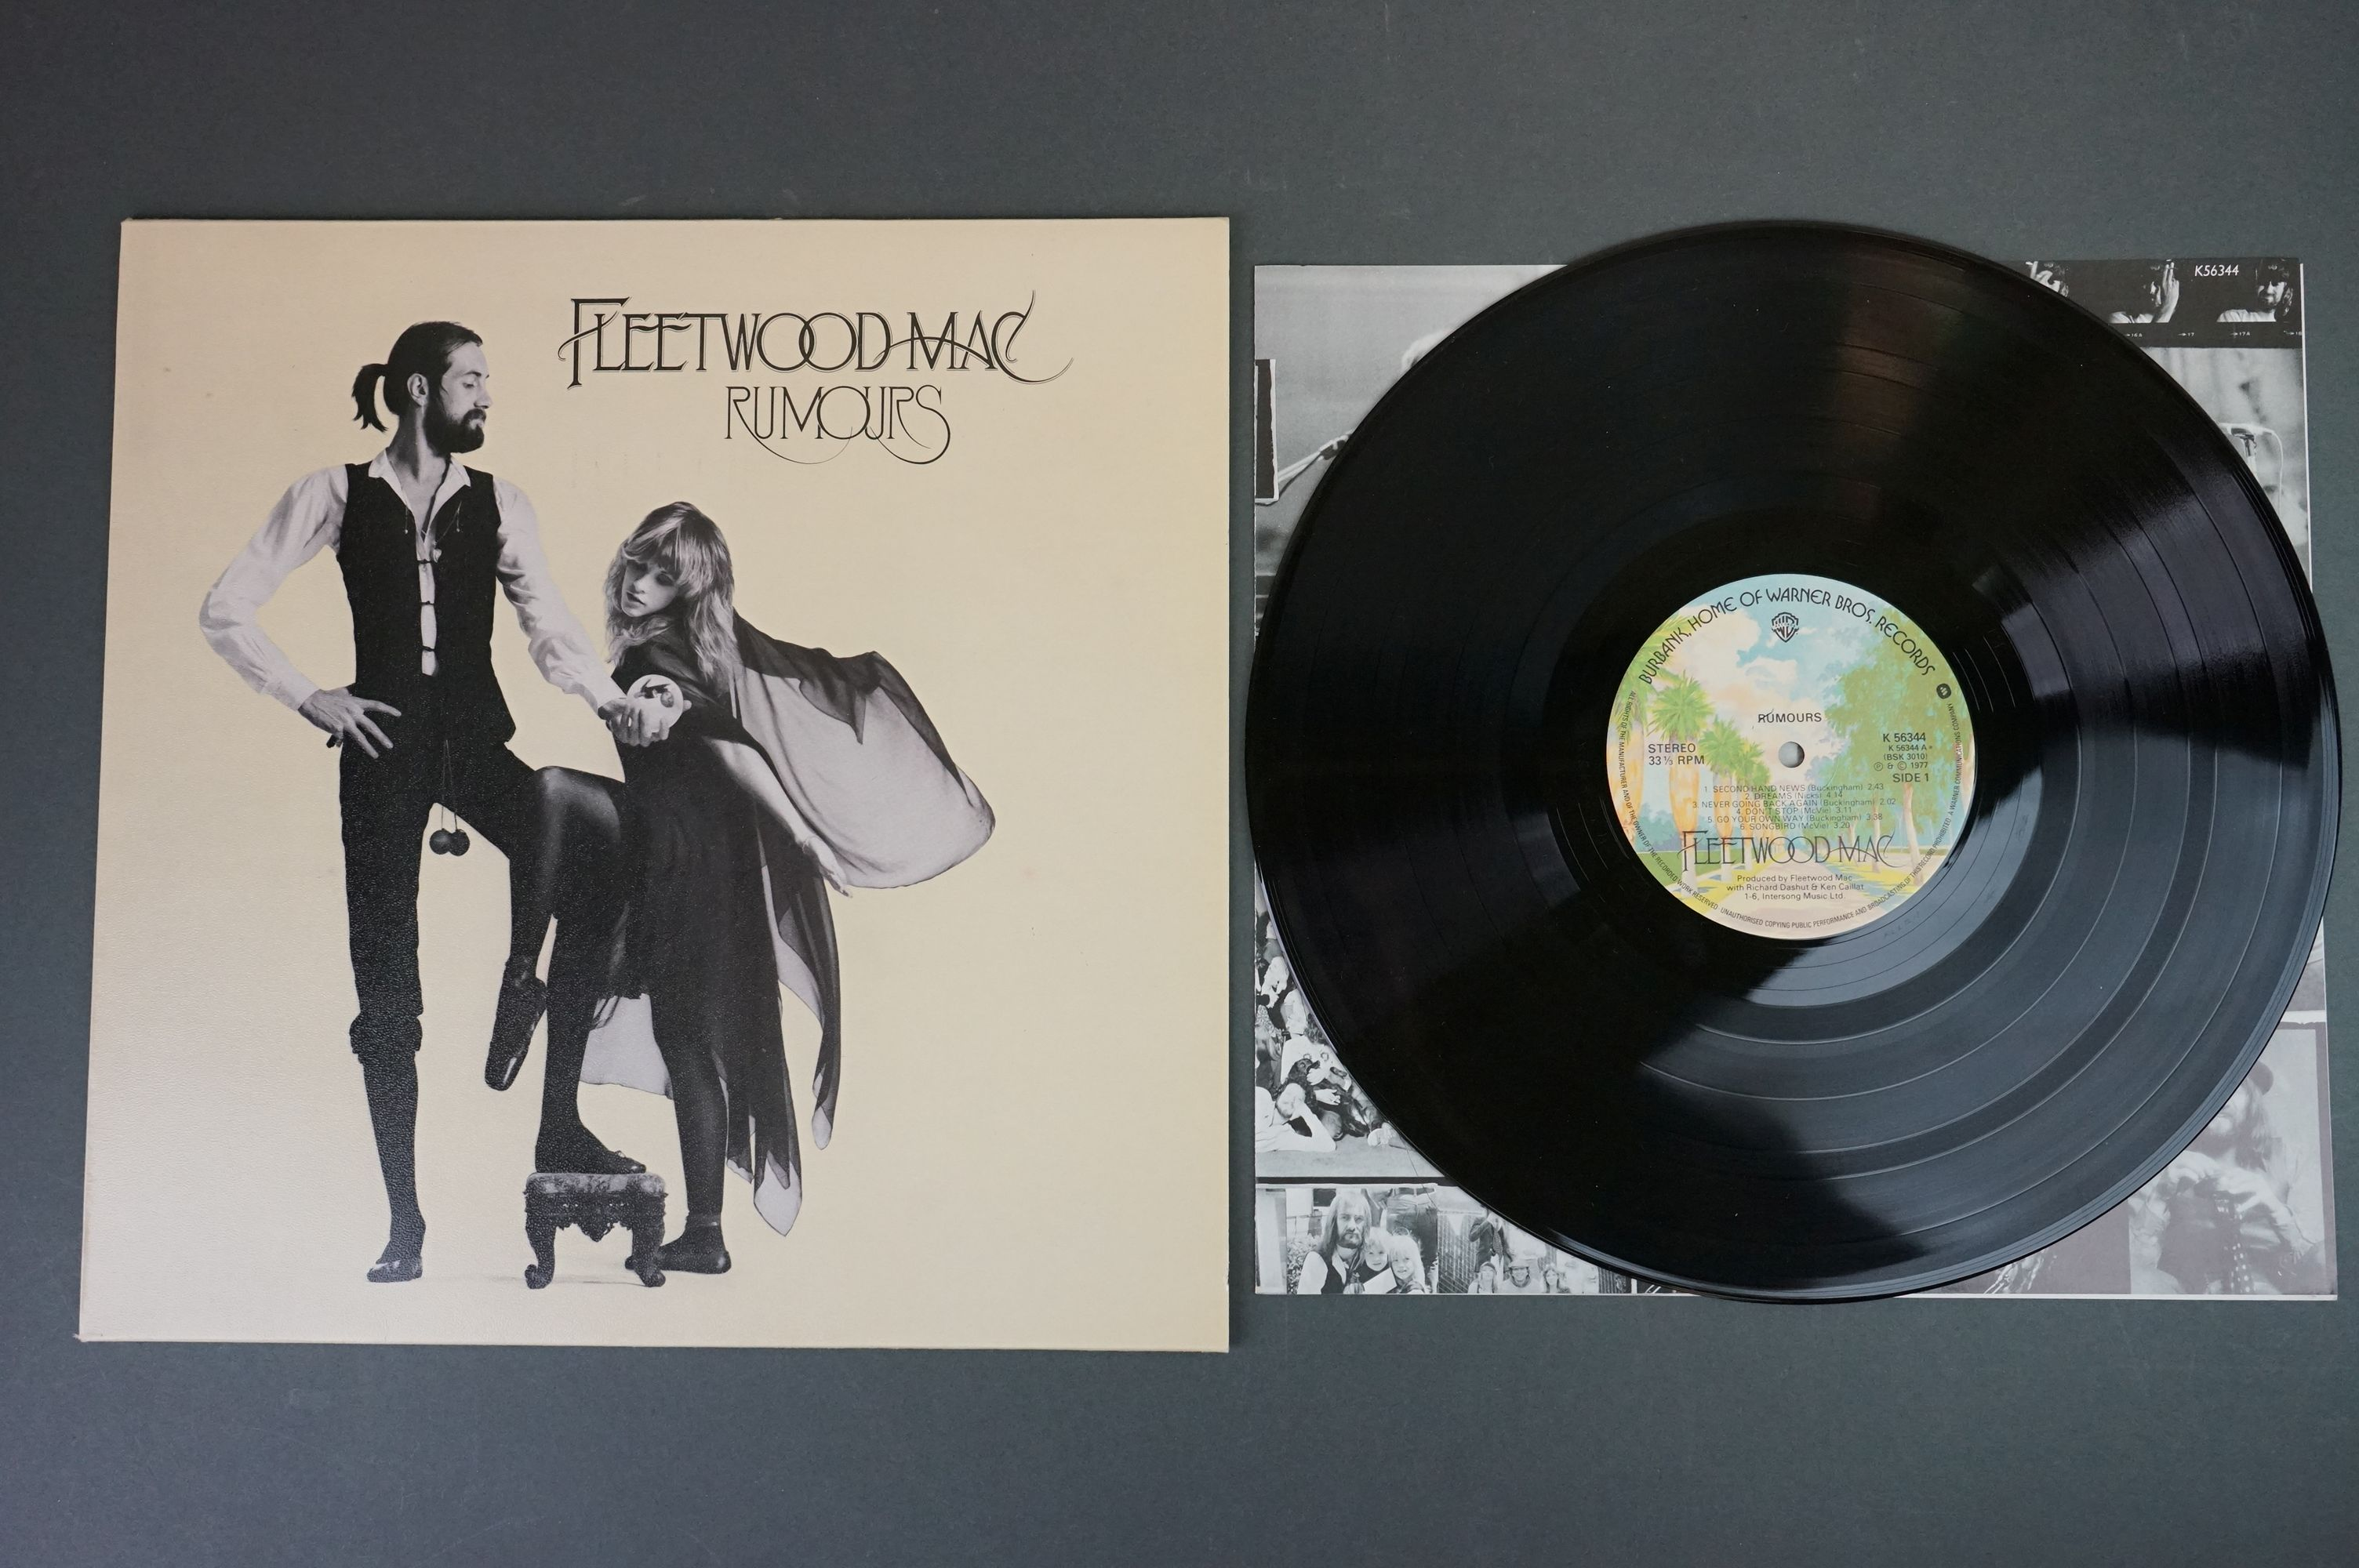 Vinyl - Two Fleetwood Mac LPs to include Tusk (K66088) and Rumours (K56344), sleeves and vinyl vg+ - Image 2 of 7